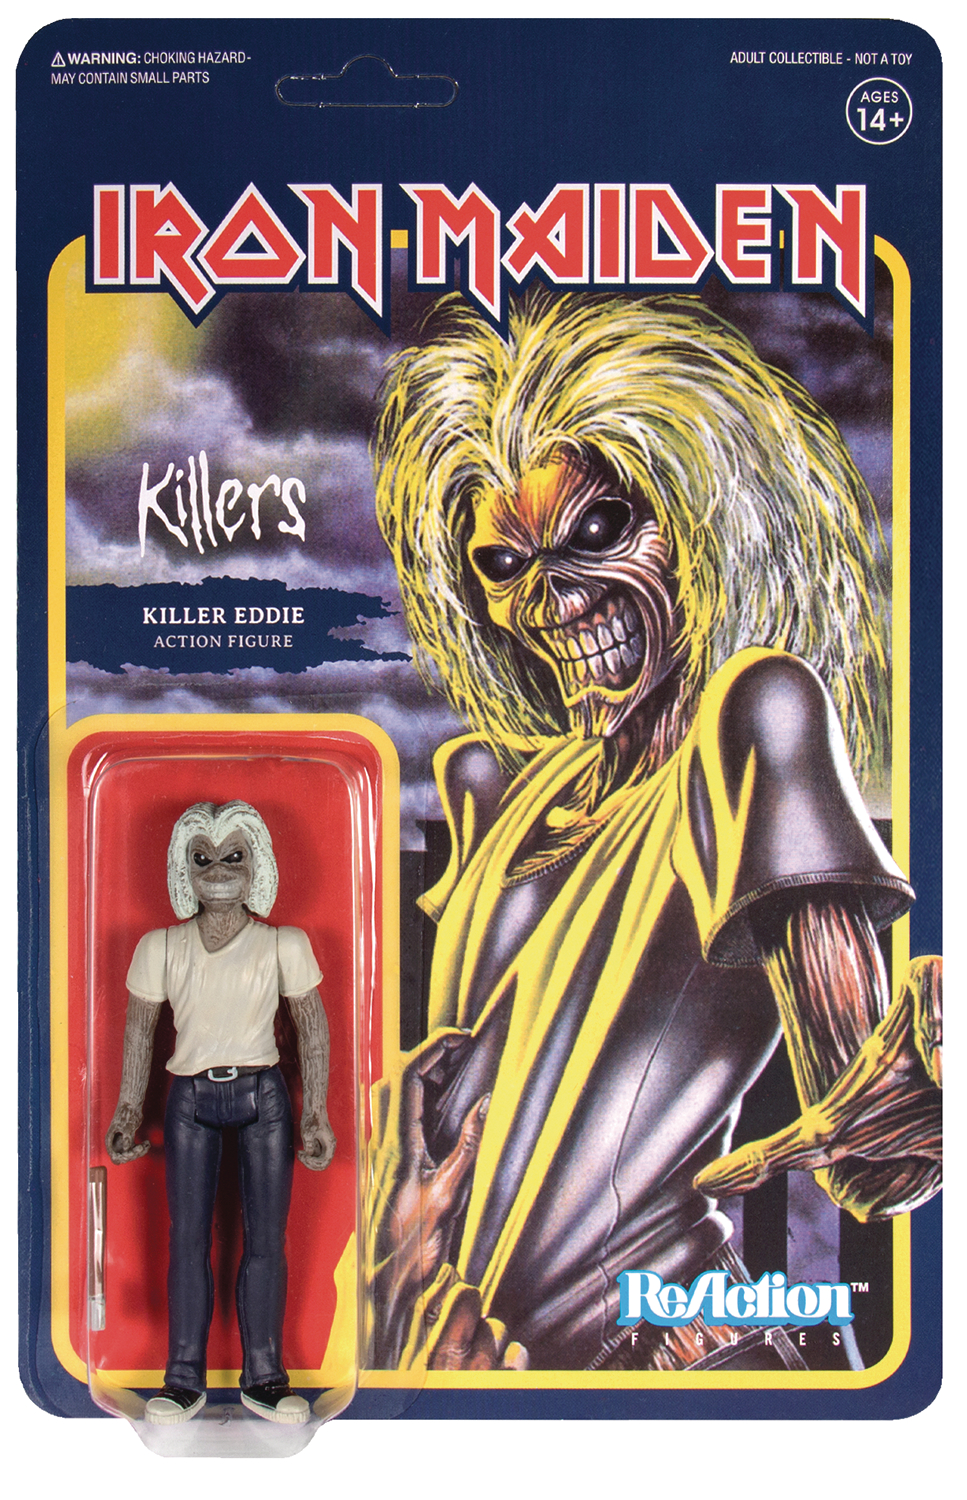 Reaction Figure - Iron Maiden - Killer Eddie